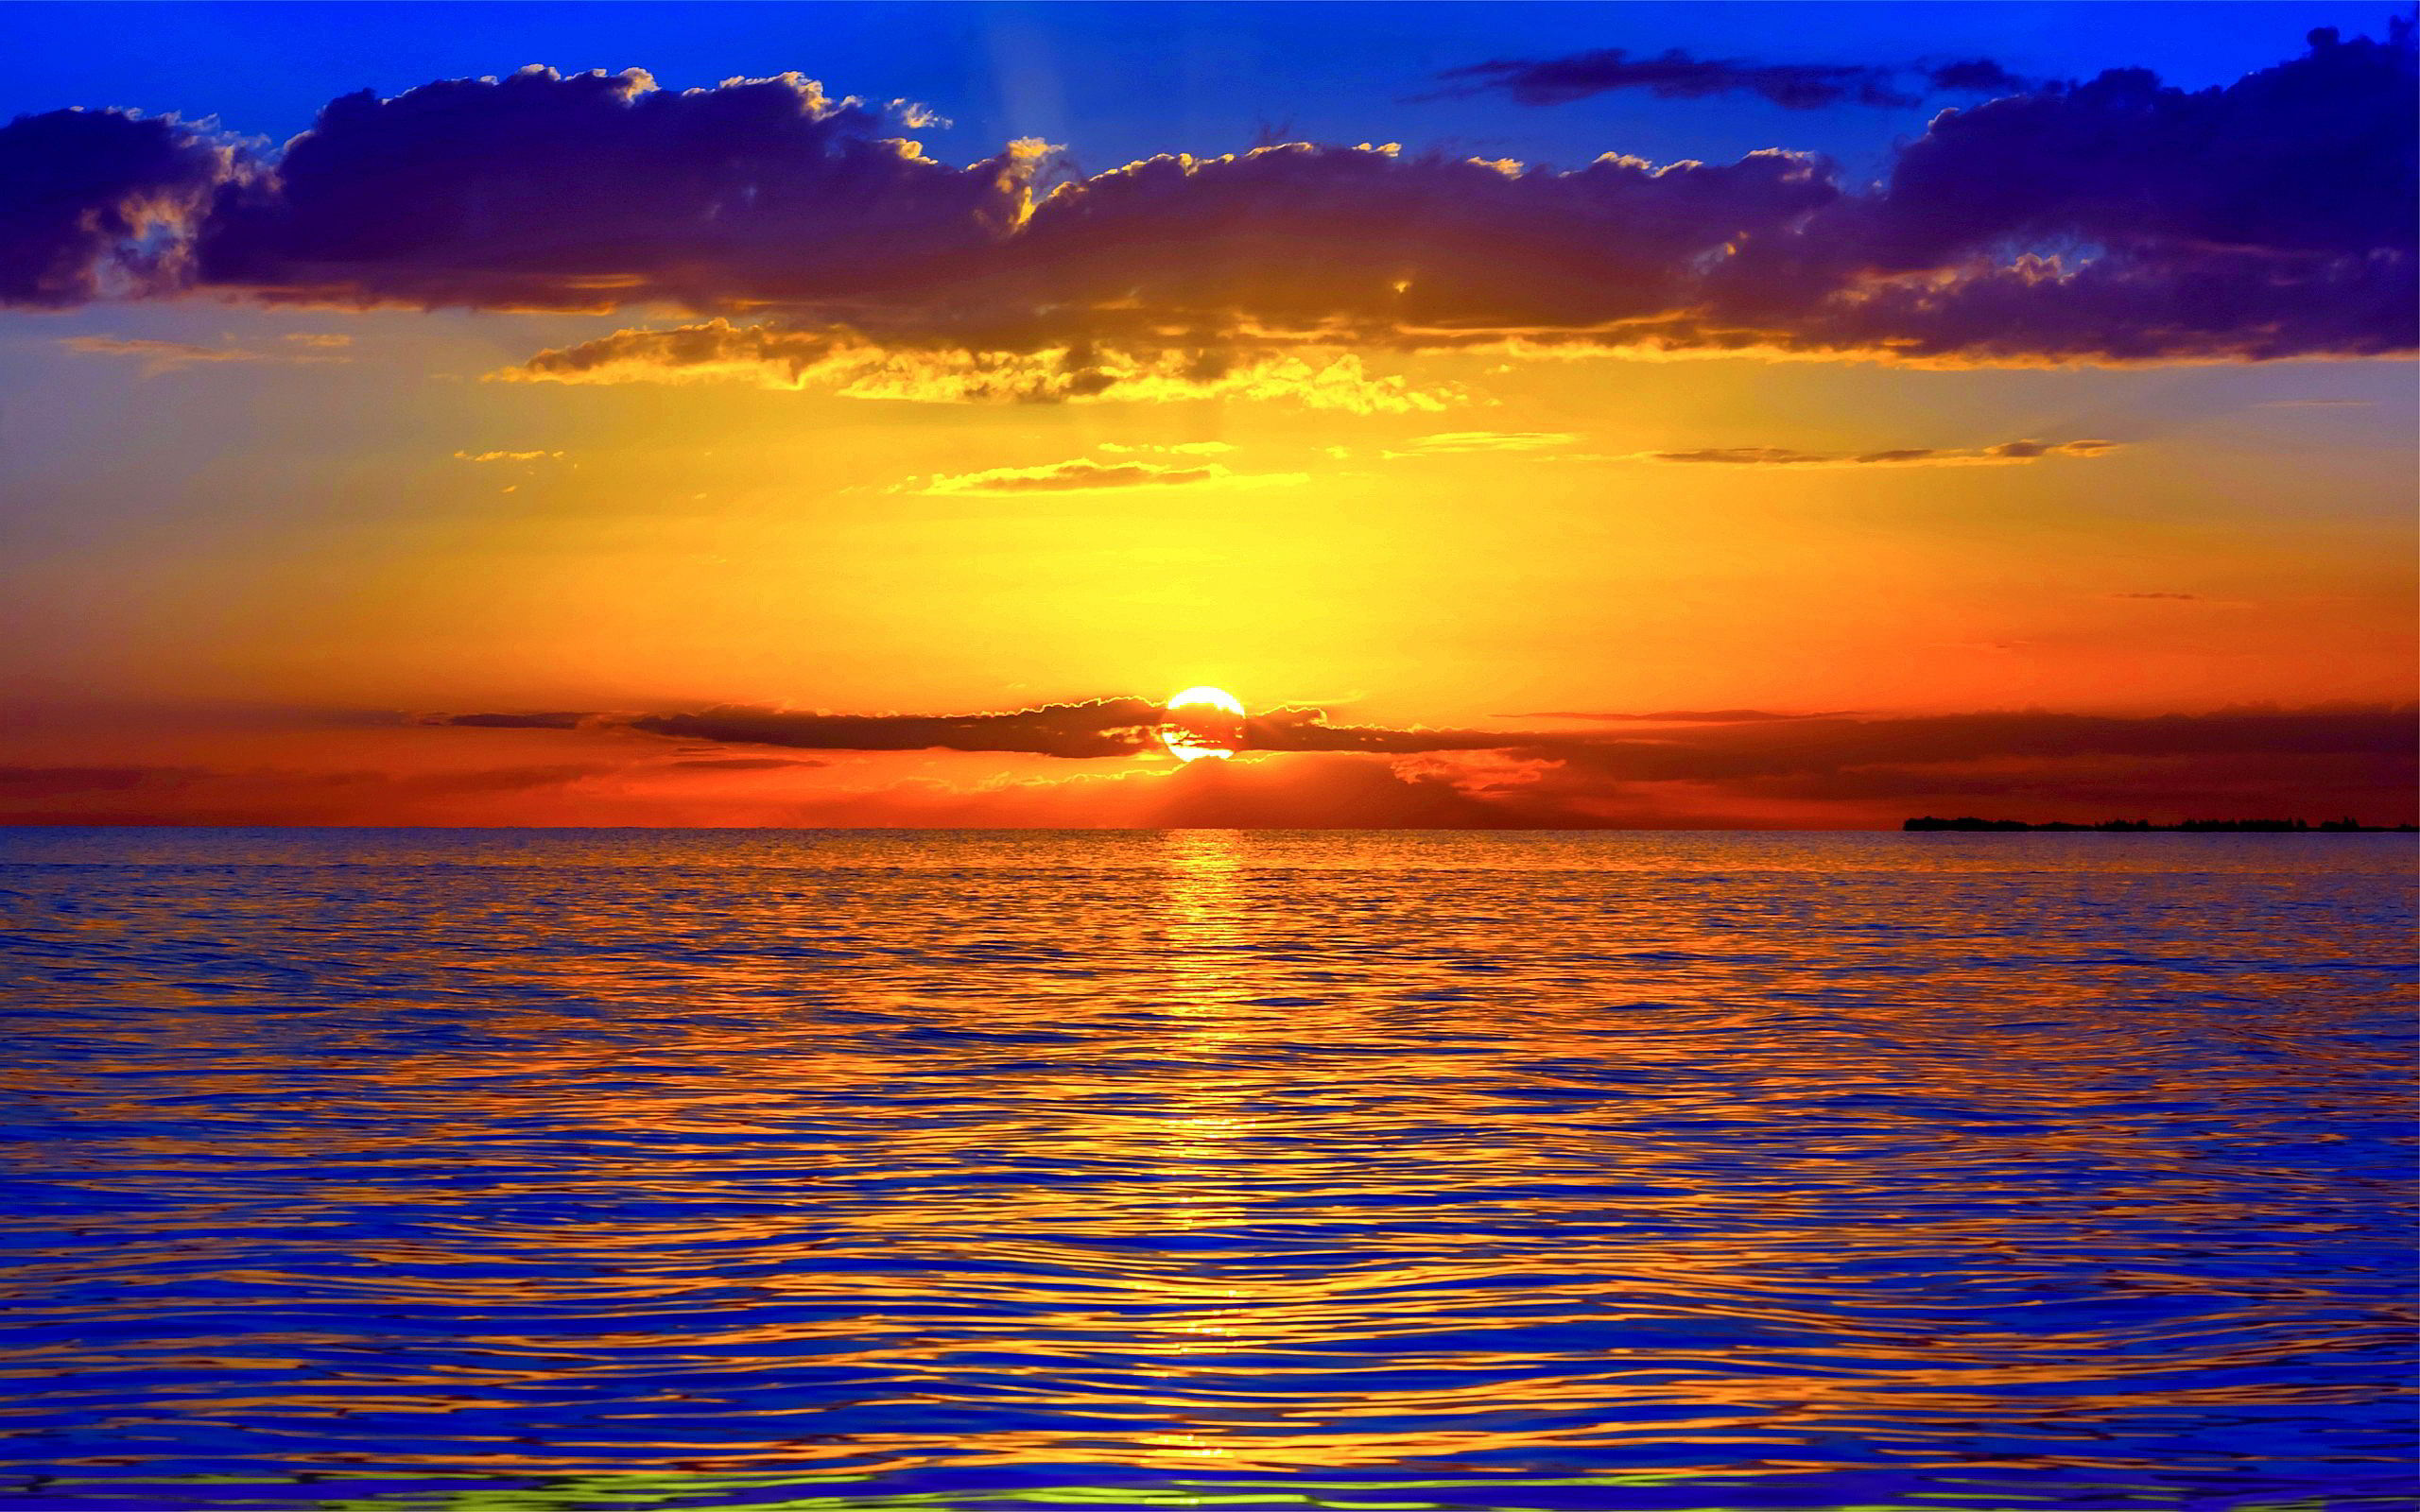 10 Best Beach Sunset Desktop WallpapersFreeCreatives